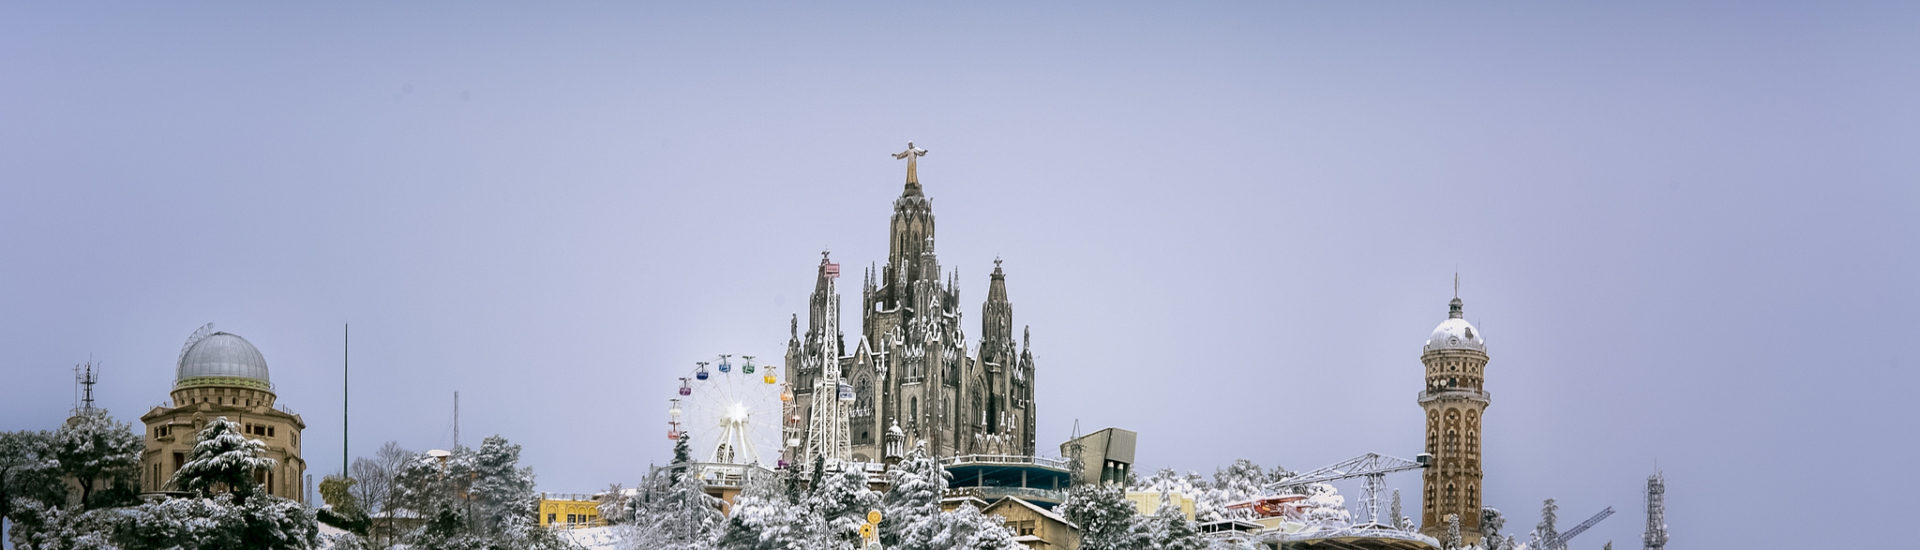 Barcelona in winter by Juan Mario Cuellar | flickr